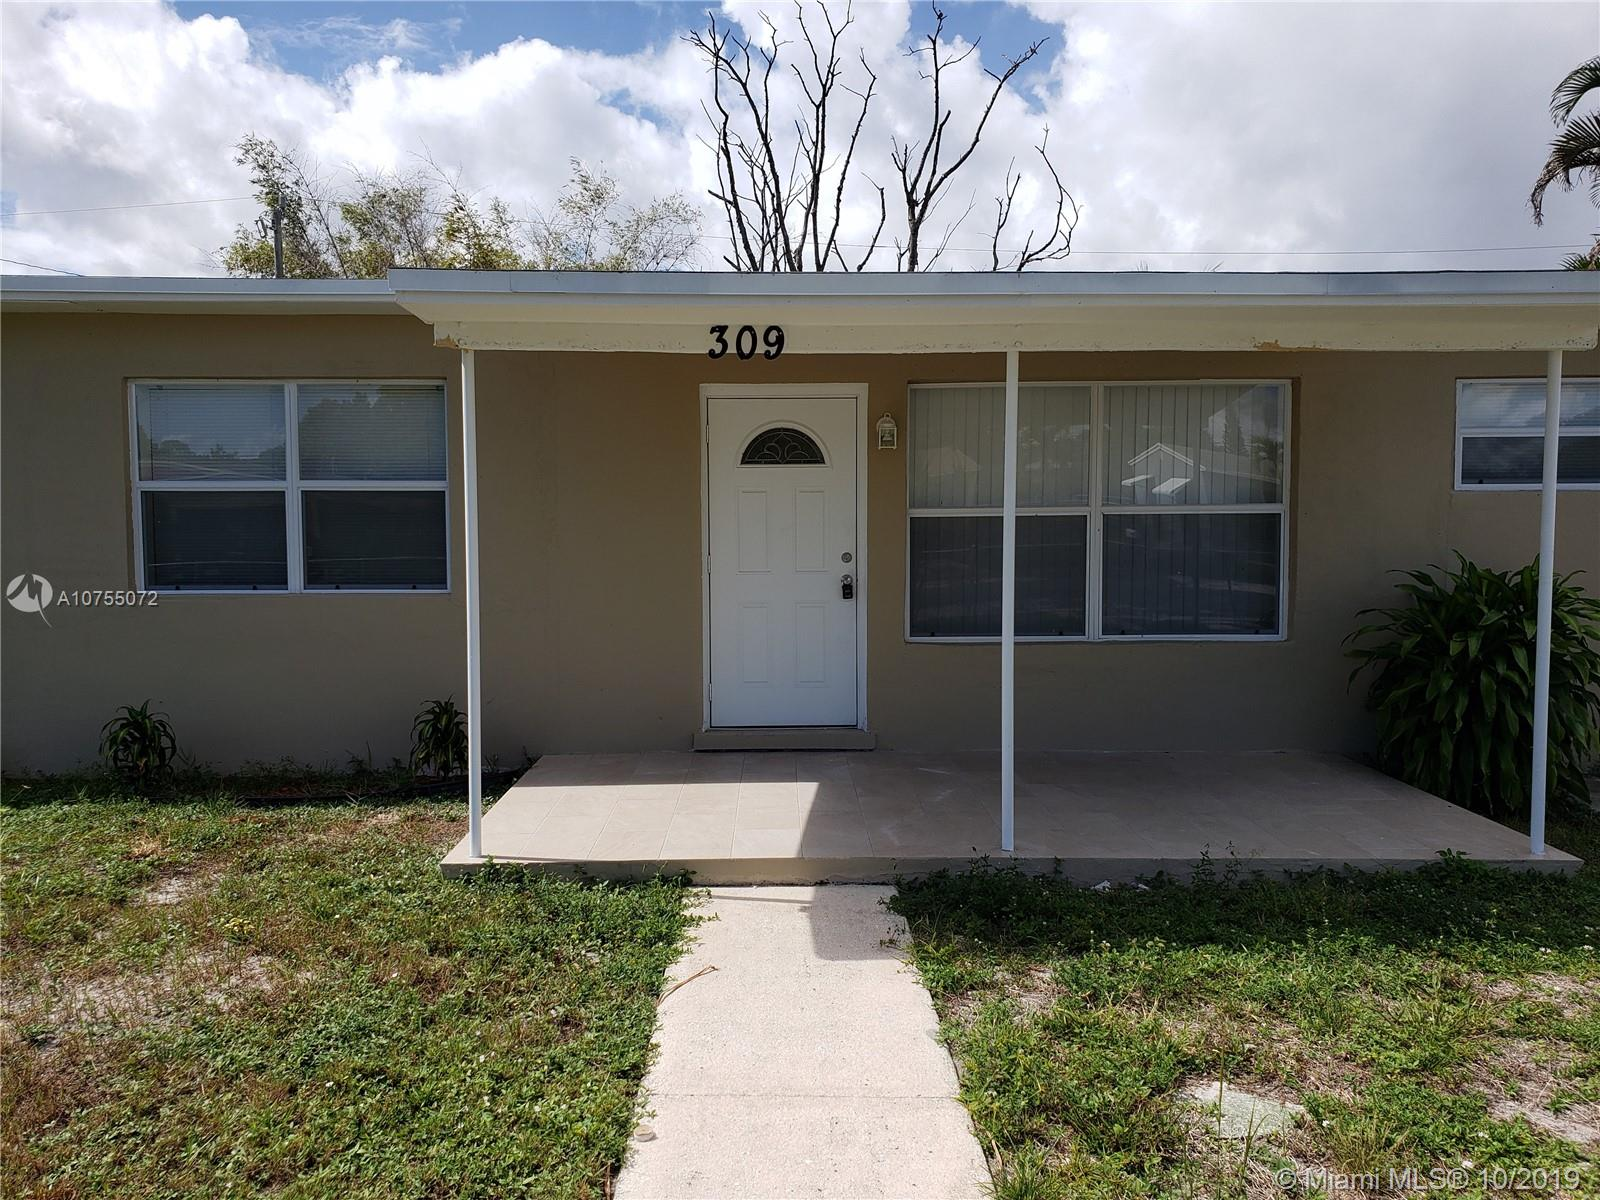 BEAUTIFUL 3 BED 1 BATH SINGLE FAMILY HOME COMPLETELY REMODELED. STAINLESS STEEL APPLIANCES, GRANITE COUNTERTOPS, NEW FLOORING, NEW BATHROOM, NEW WINDOWS, LARGE YARD. CONVENIENTLY LOCATED CLOSE TO SHOPPING AND HIGHWAYS.